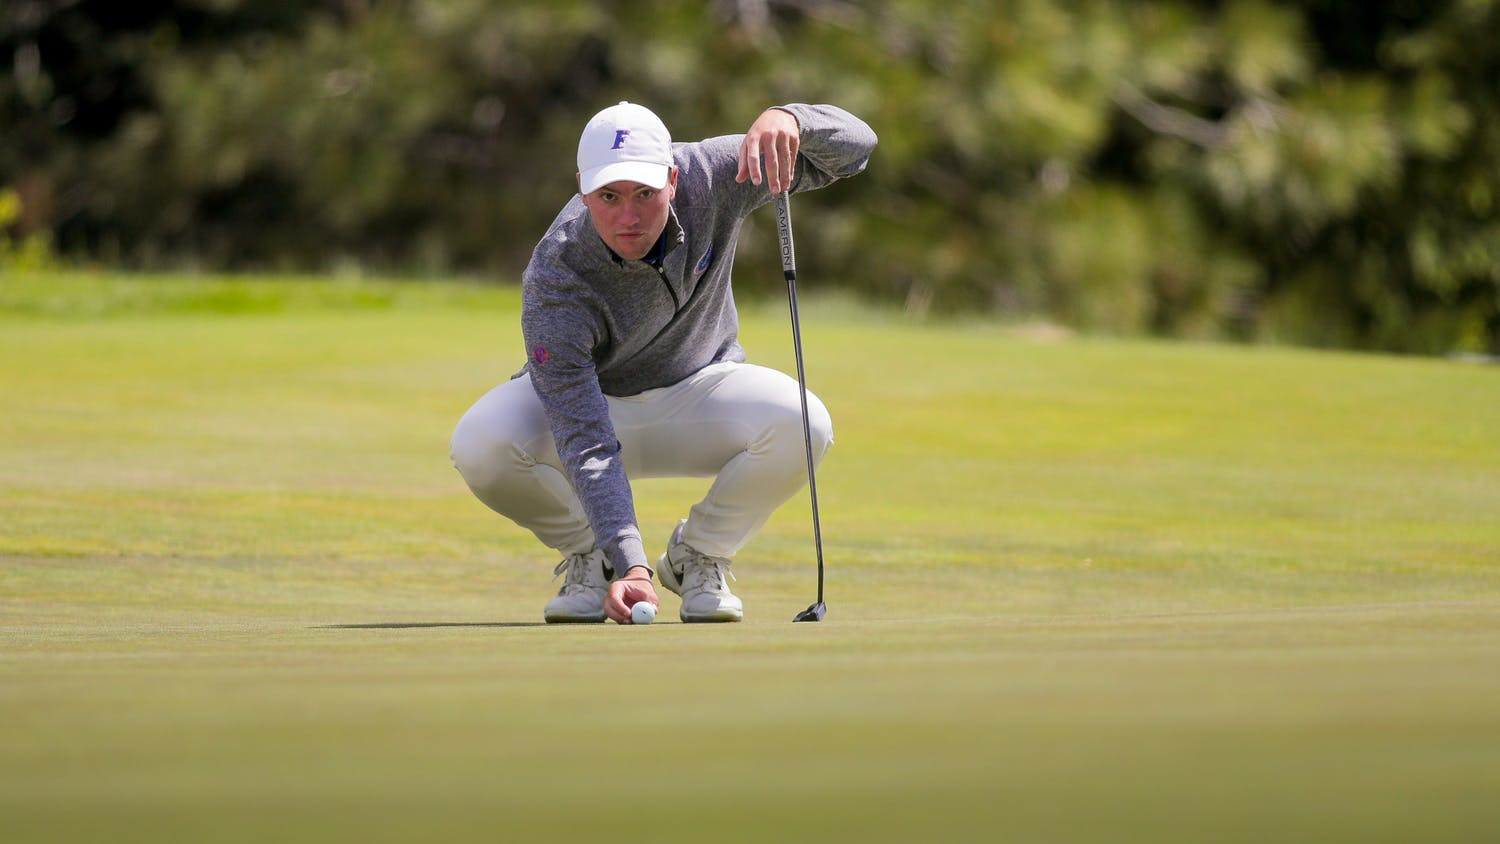 Joe Pagdin of The University of Florida's men's golf team competes in the first round of the 2021 NCAA  Cle Elum Regional at Tumble Creek Golf Club in Cle Elum, Wash., on May 17, 2021. (Photography by Scott Eklund/Red Box Pictures)